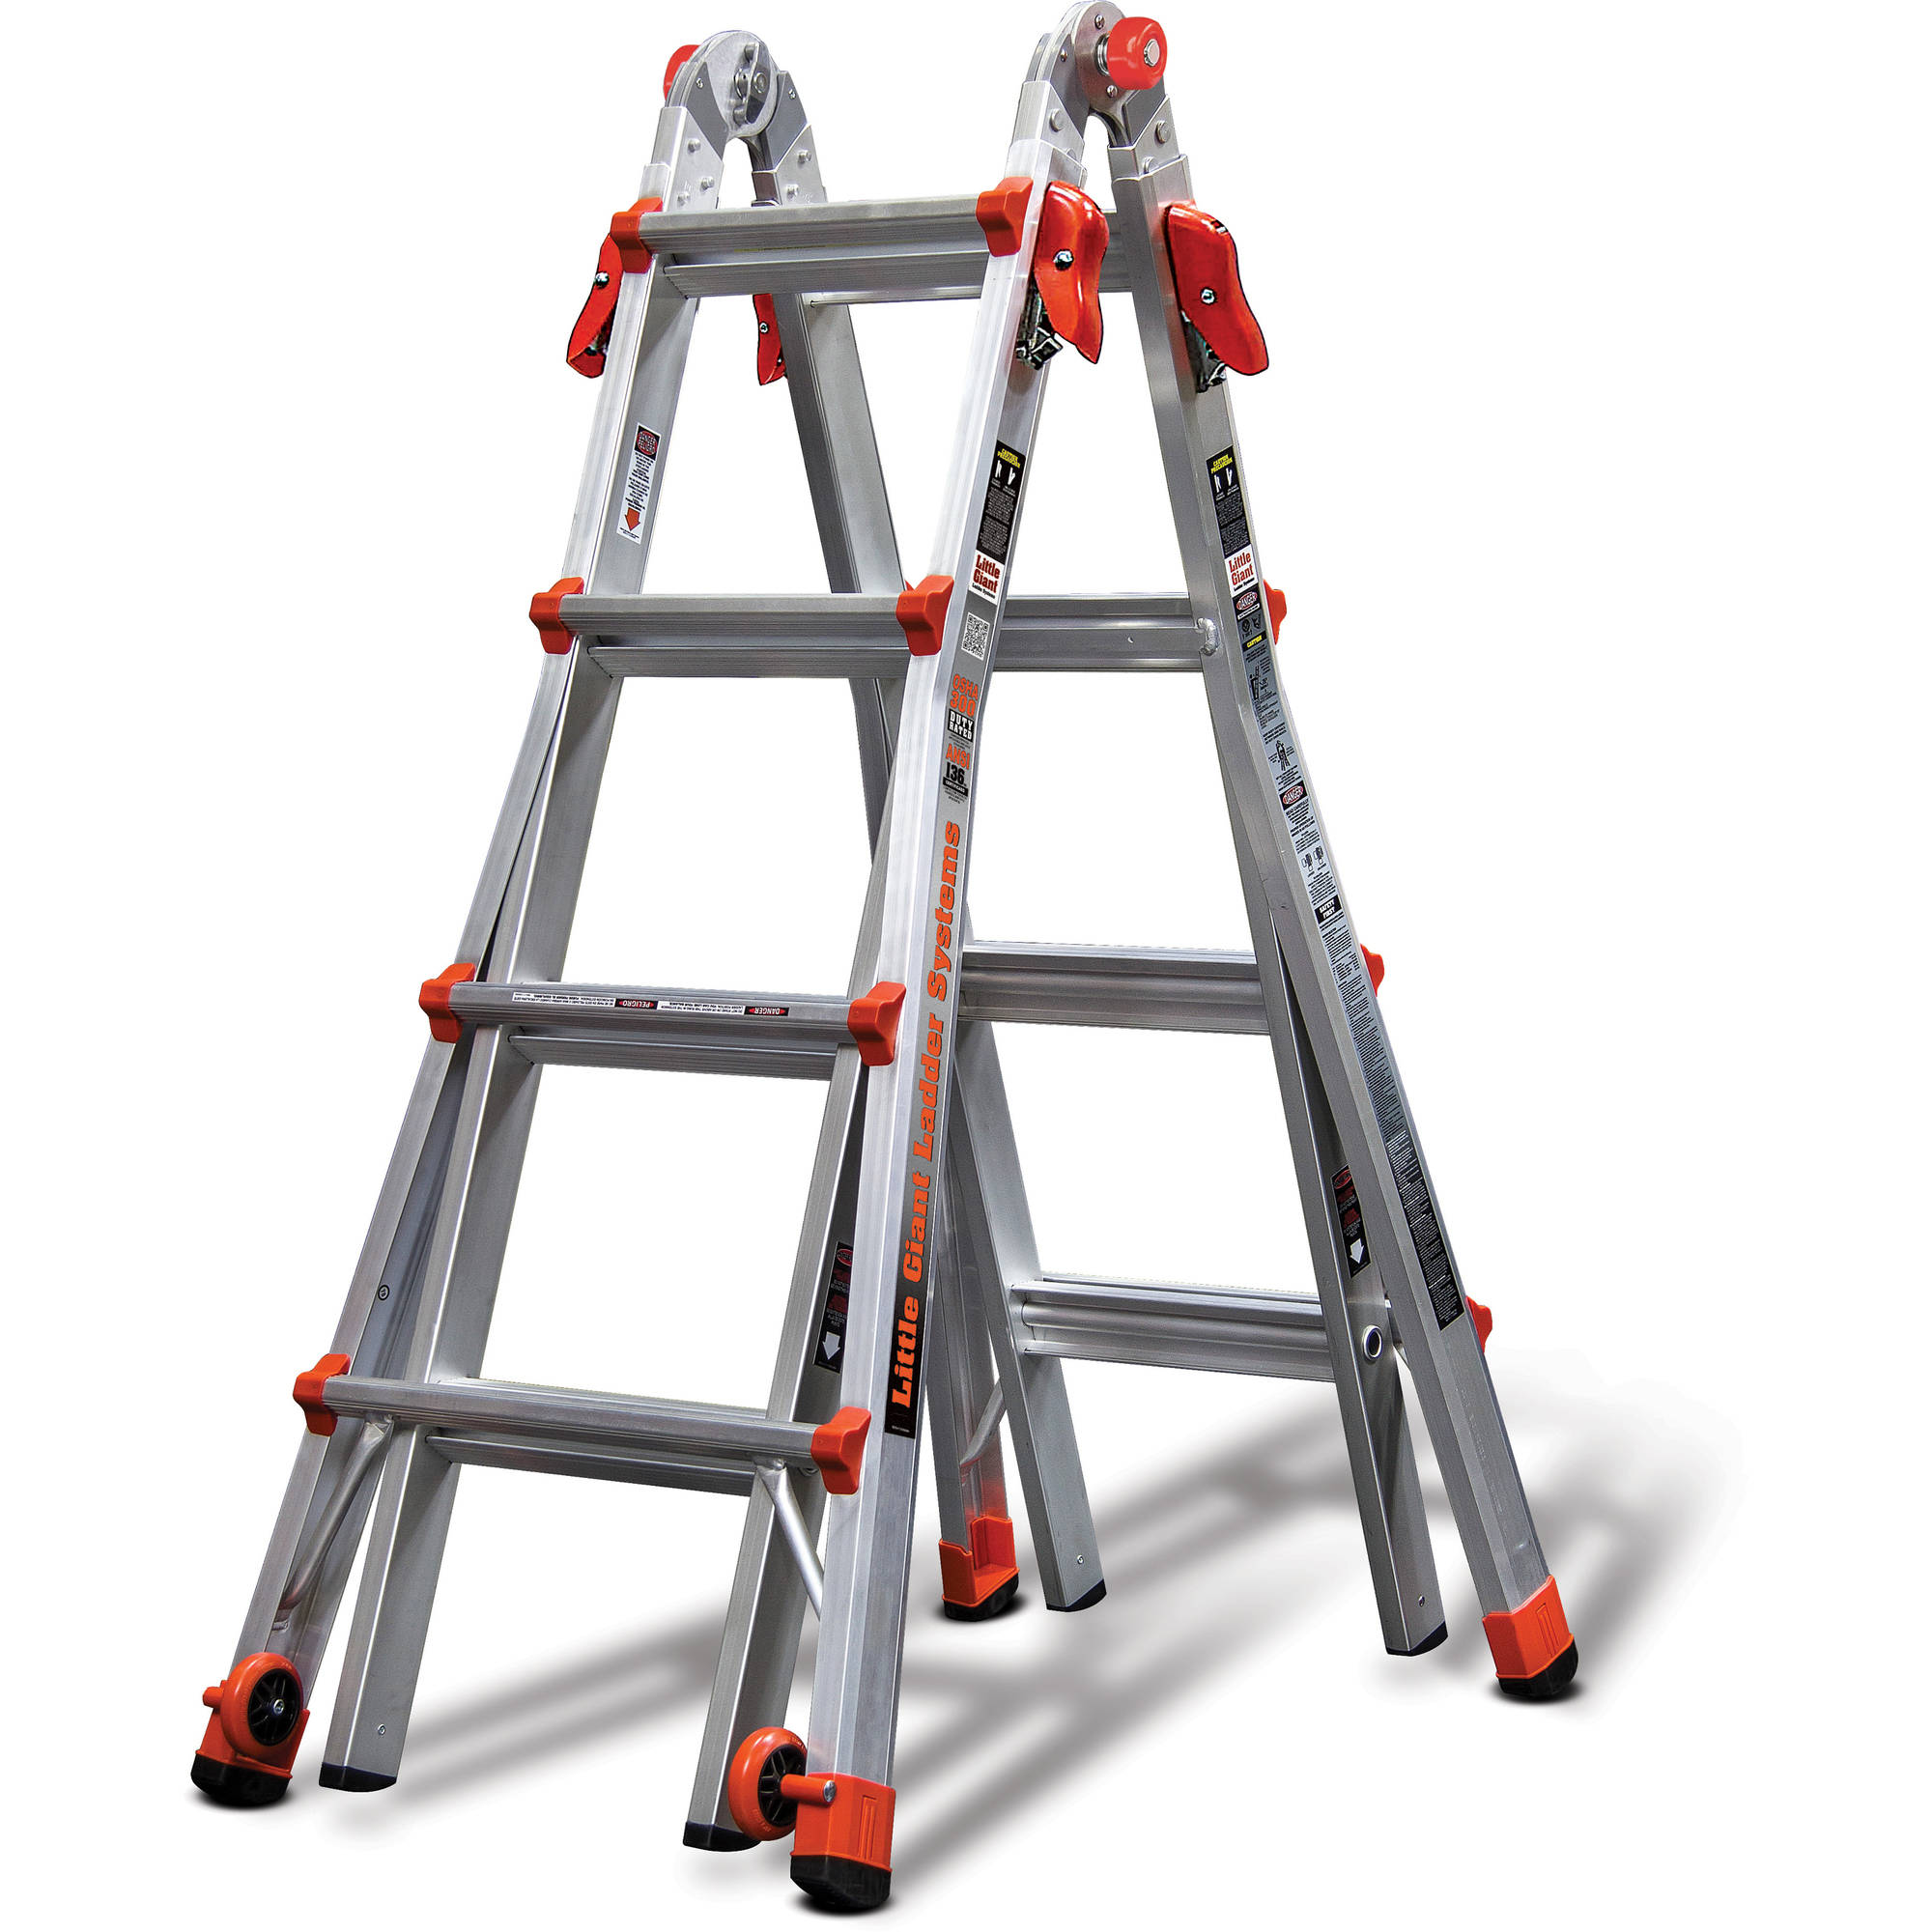 Little Giant Velocity, Model 17 - Type IA - 300 lbs rated, aluminum articulating ladder